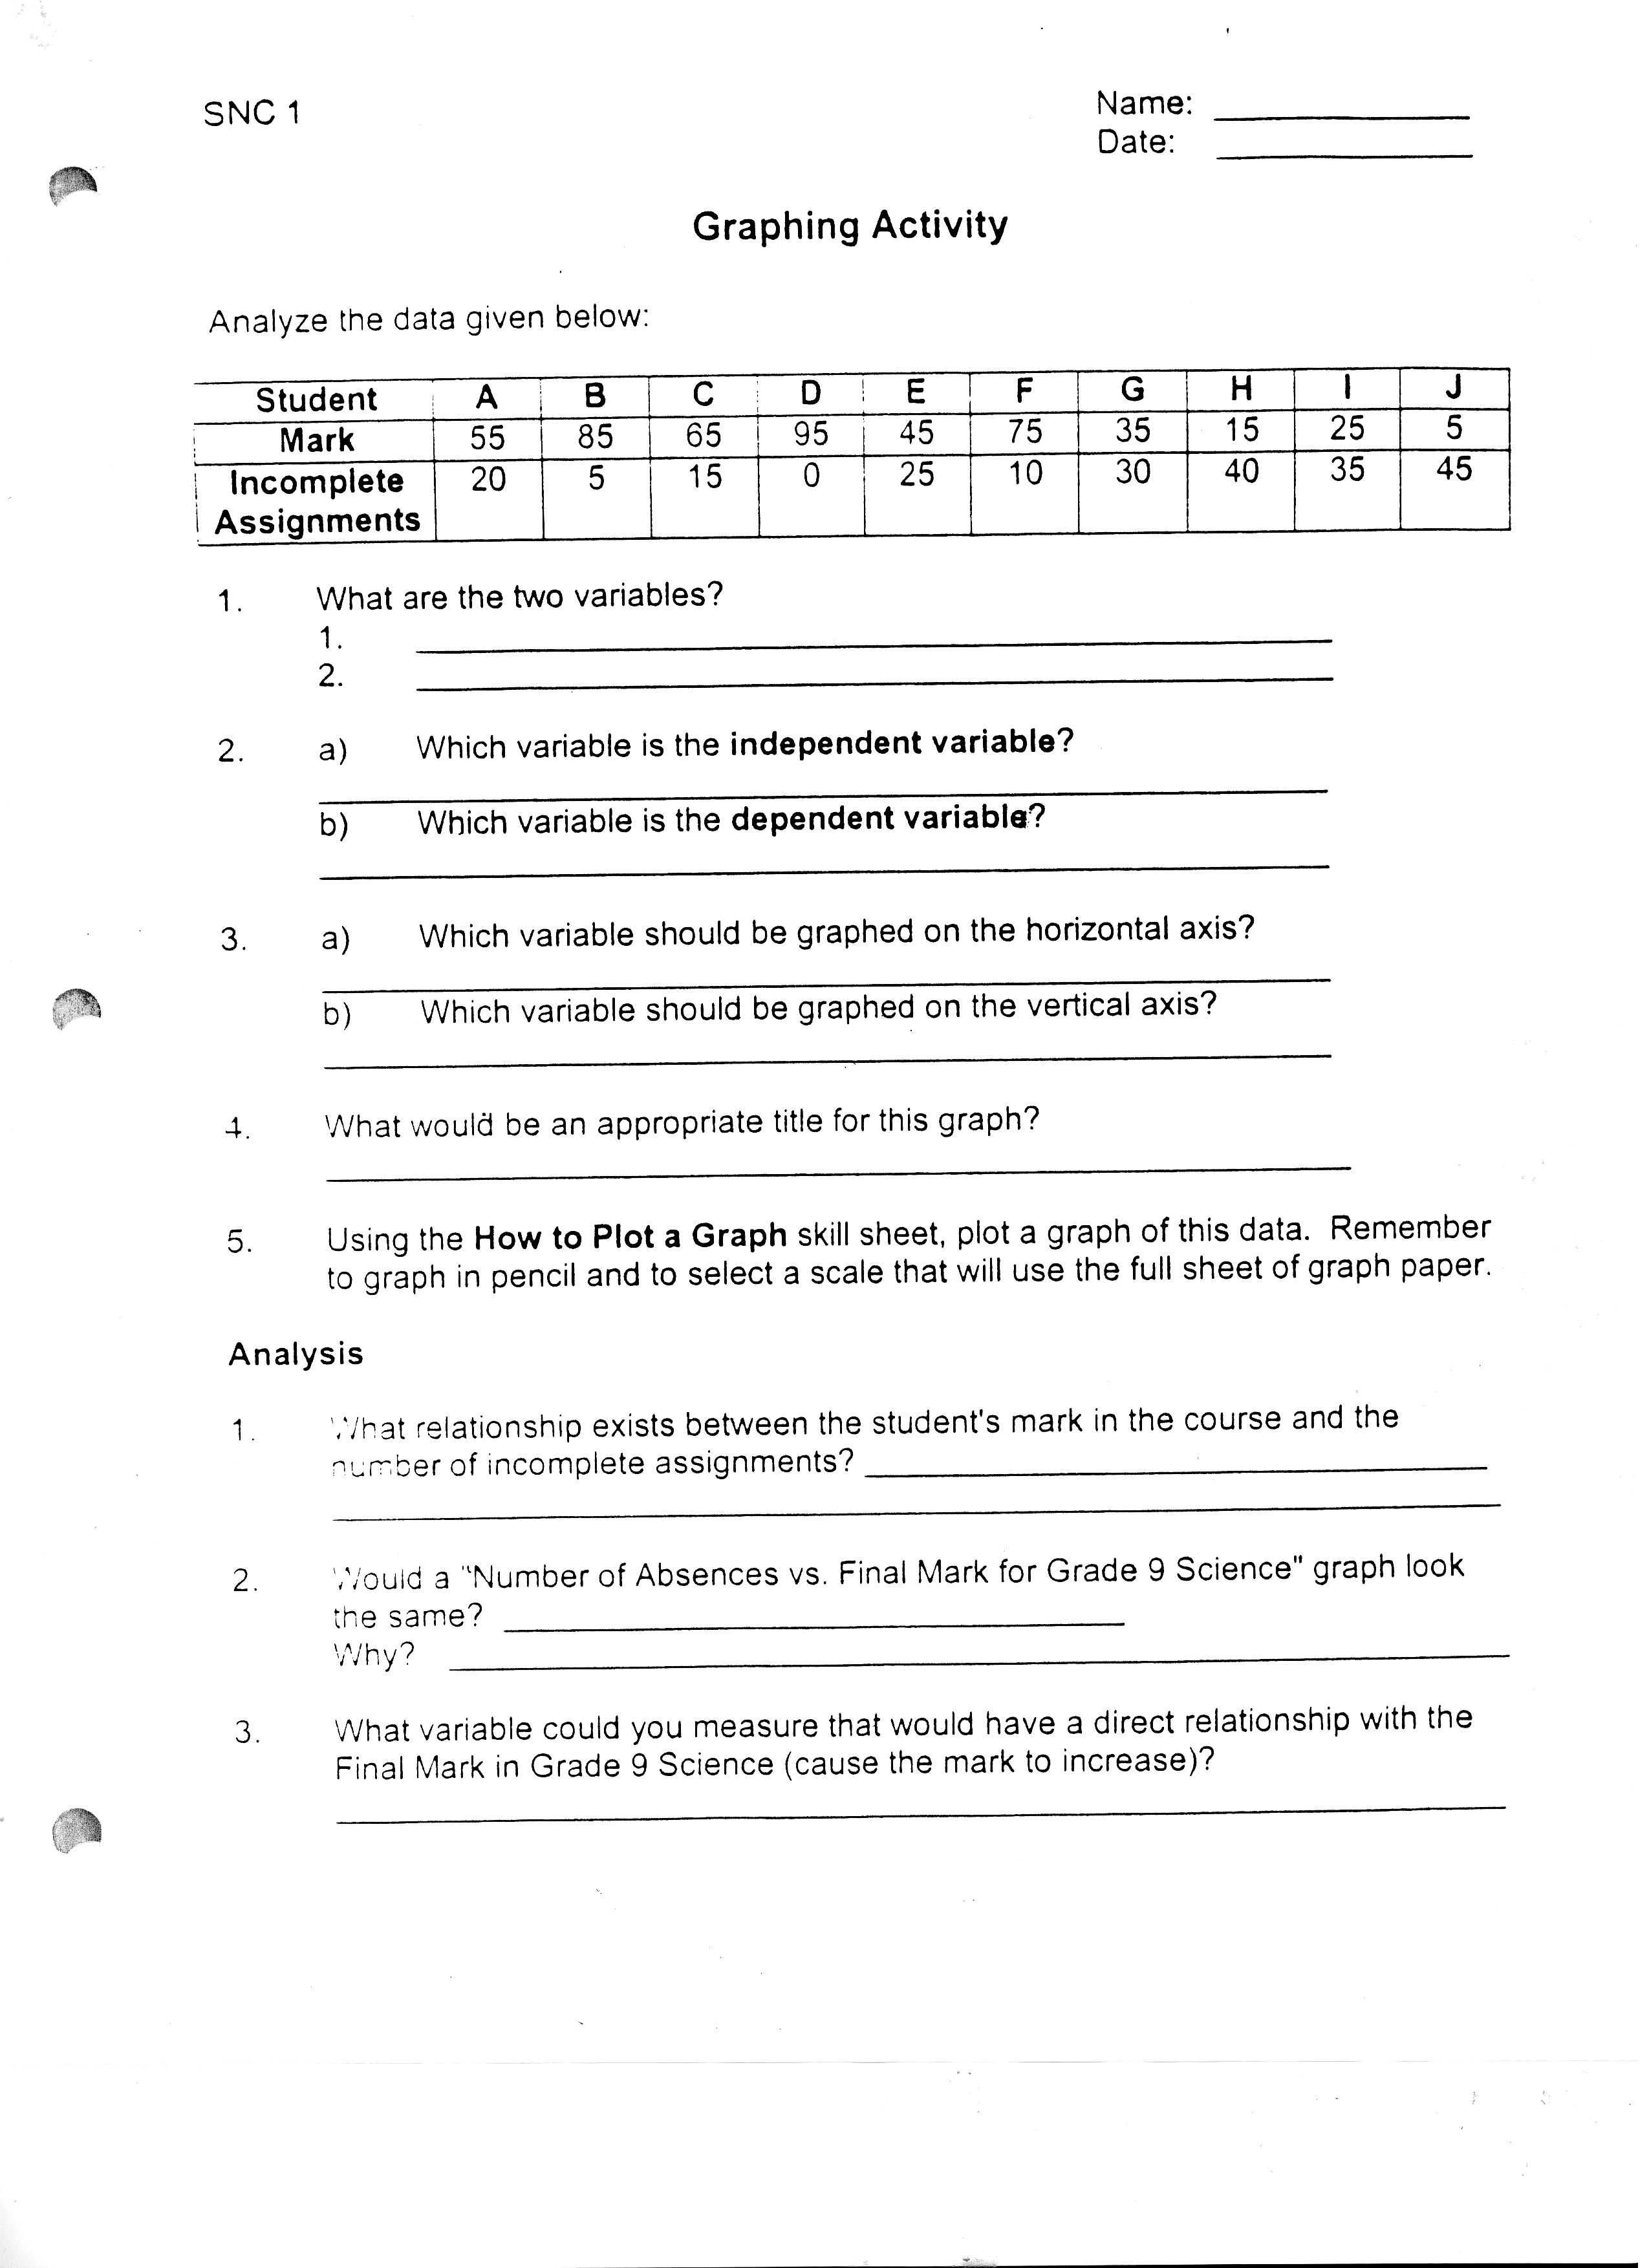 17 Best Images Of Lab Safety Activity Worksheet